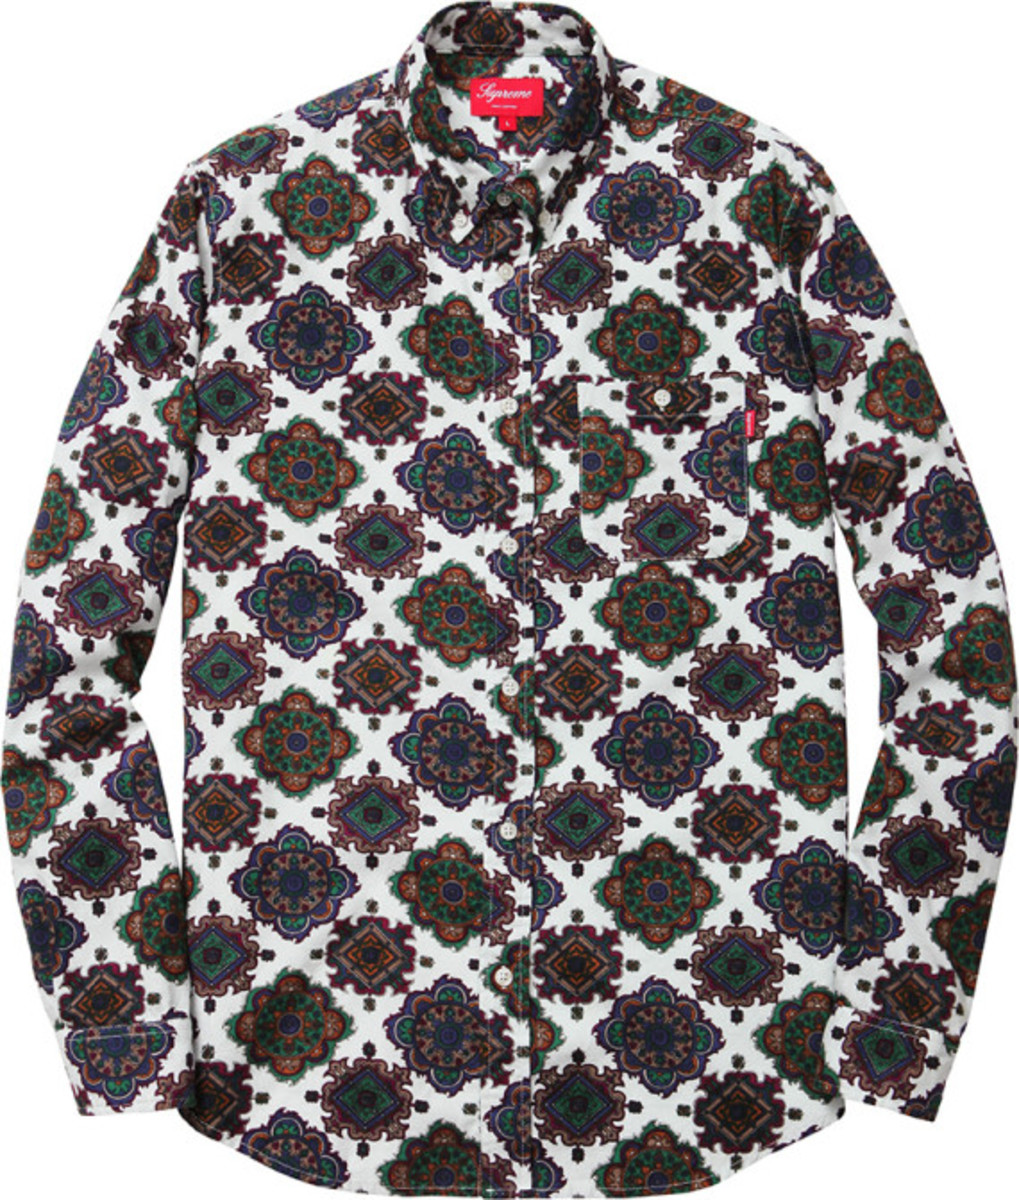 supreme-fall-winter-2014-apparel-collection-15